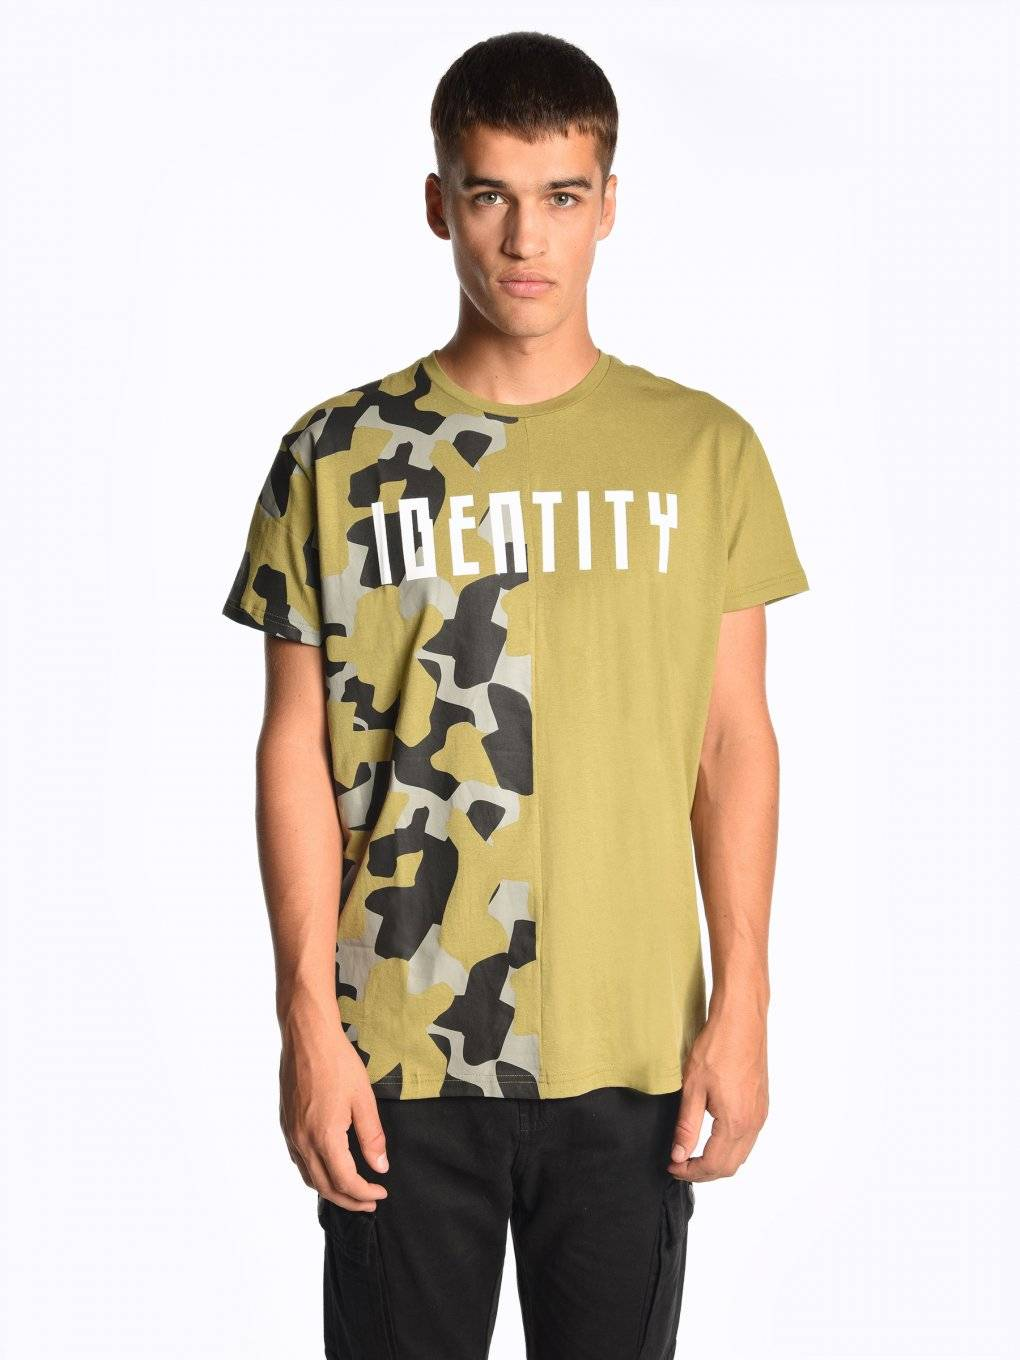 Cut&sew t-shirt with print